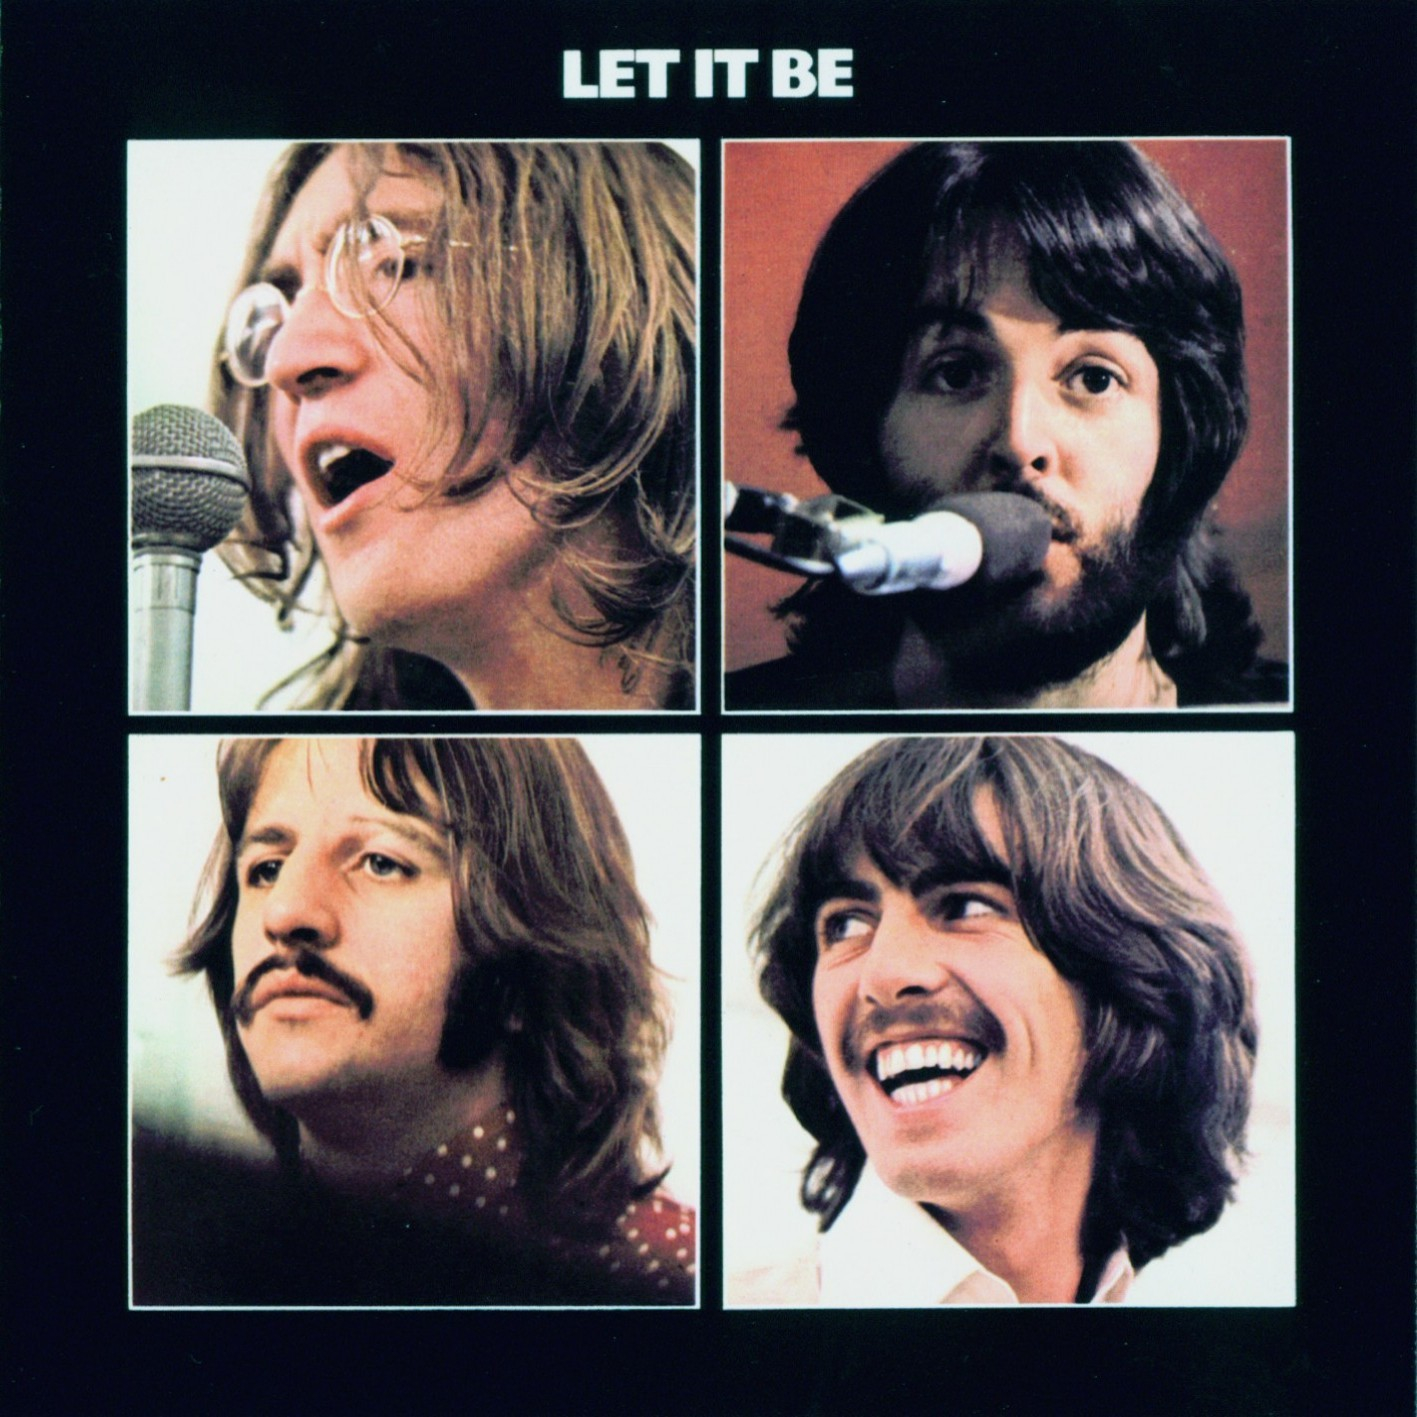 The Beatles Let It Be Album Cover Microphones